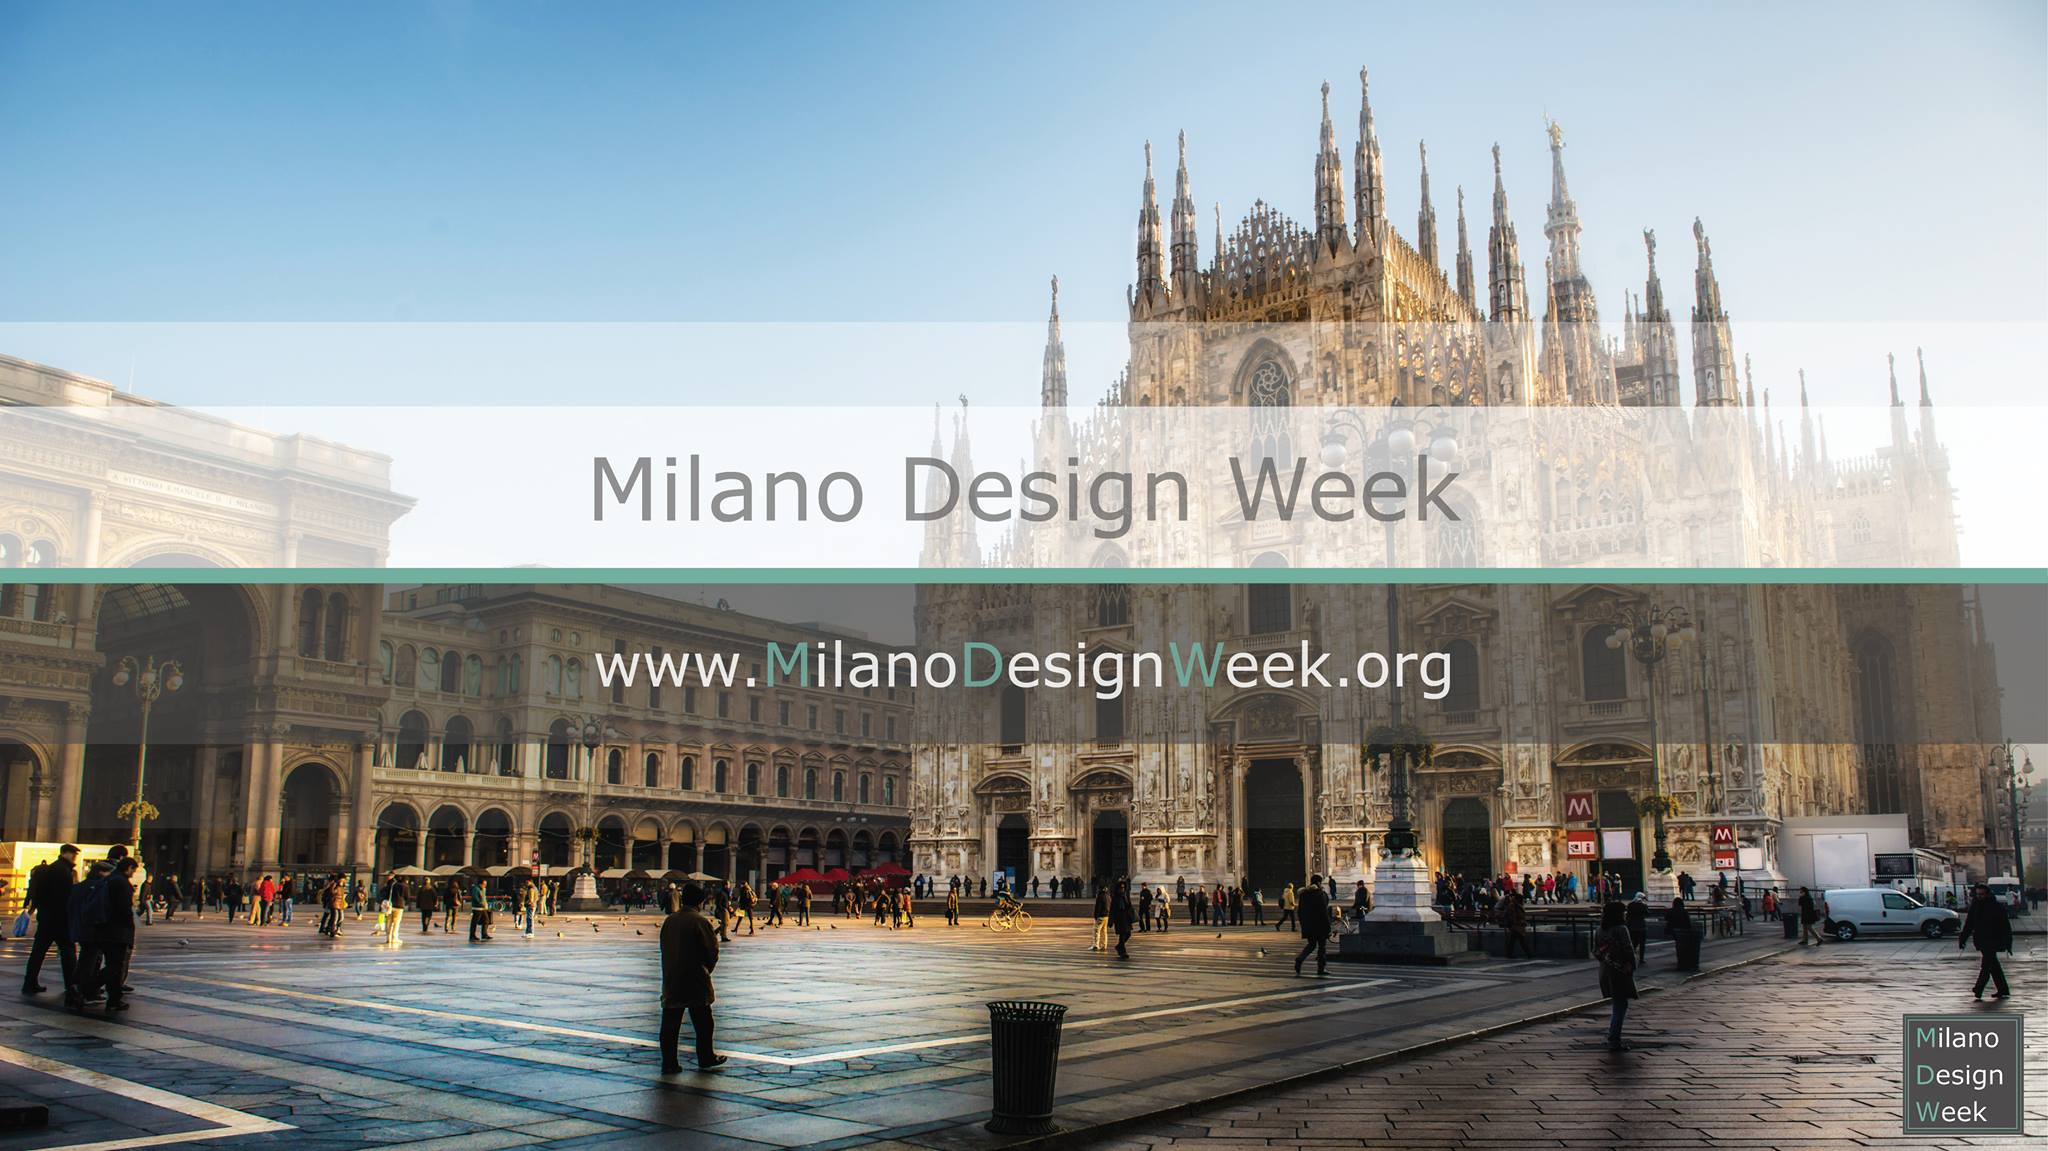 Isaloni 2016: What to see at Tortona Design Week luxxu at euroluce What To Expect From LUXXU At Euroluce What to see at Tortona Design Week luxxu at euroluce What To Expect From LUXXU At Euroluce What to see at Tortona Design Week